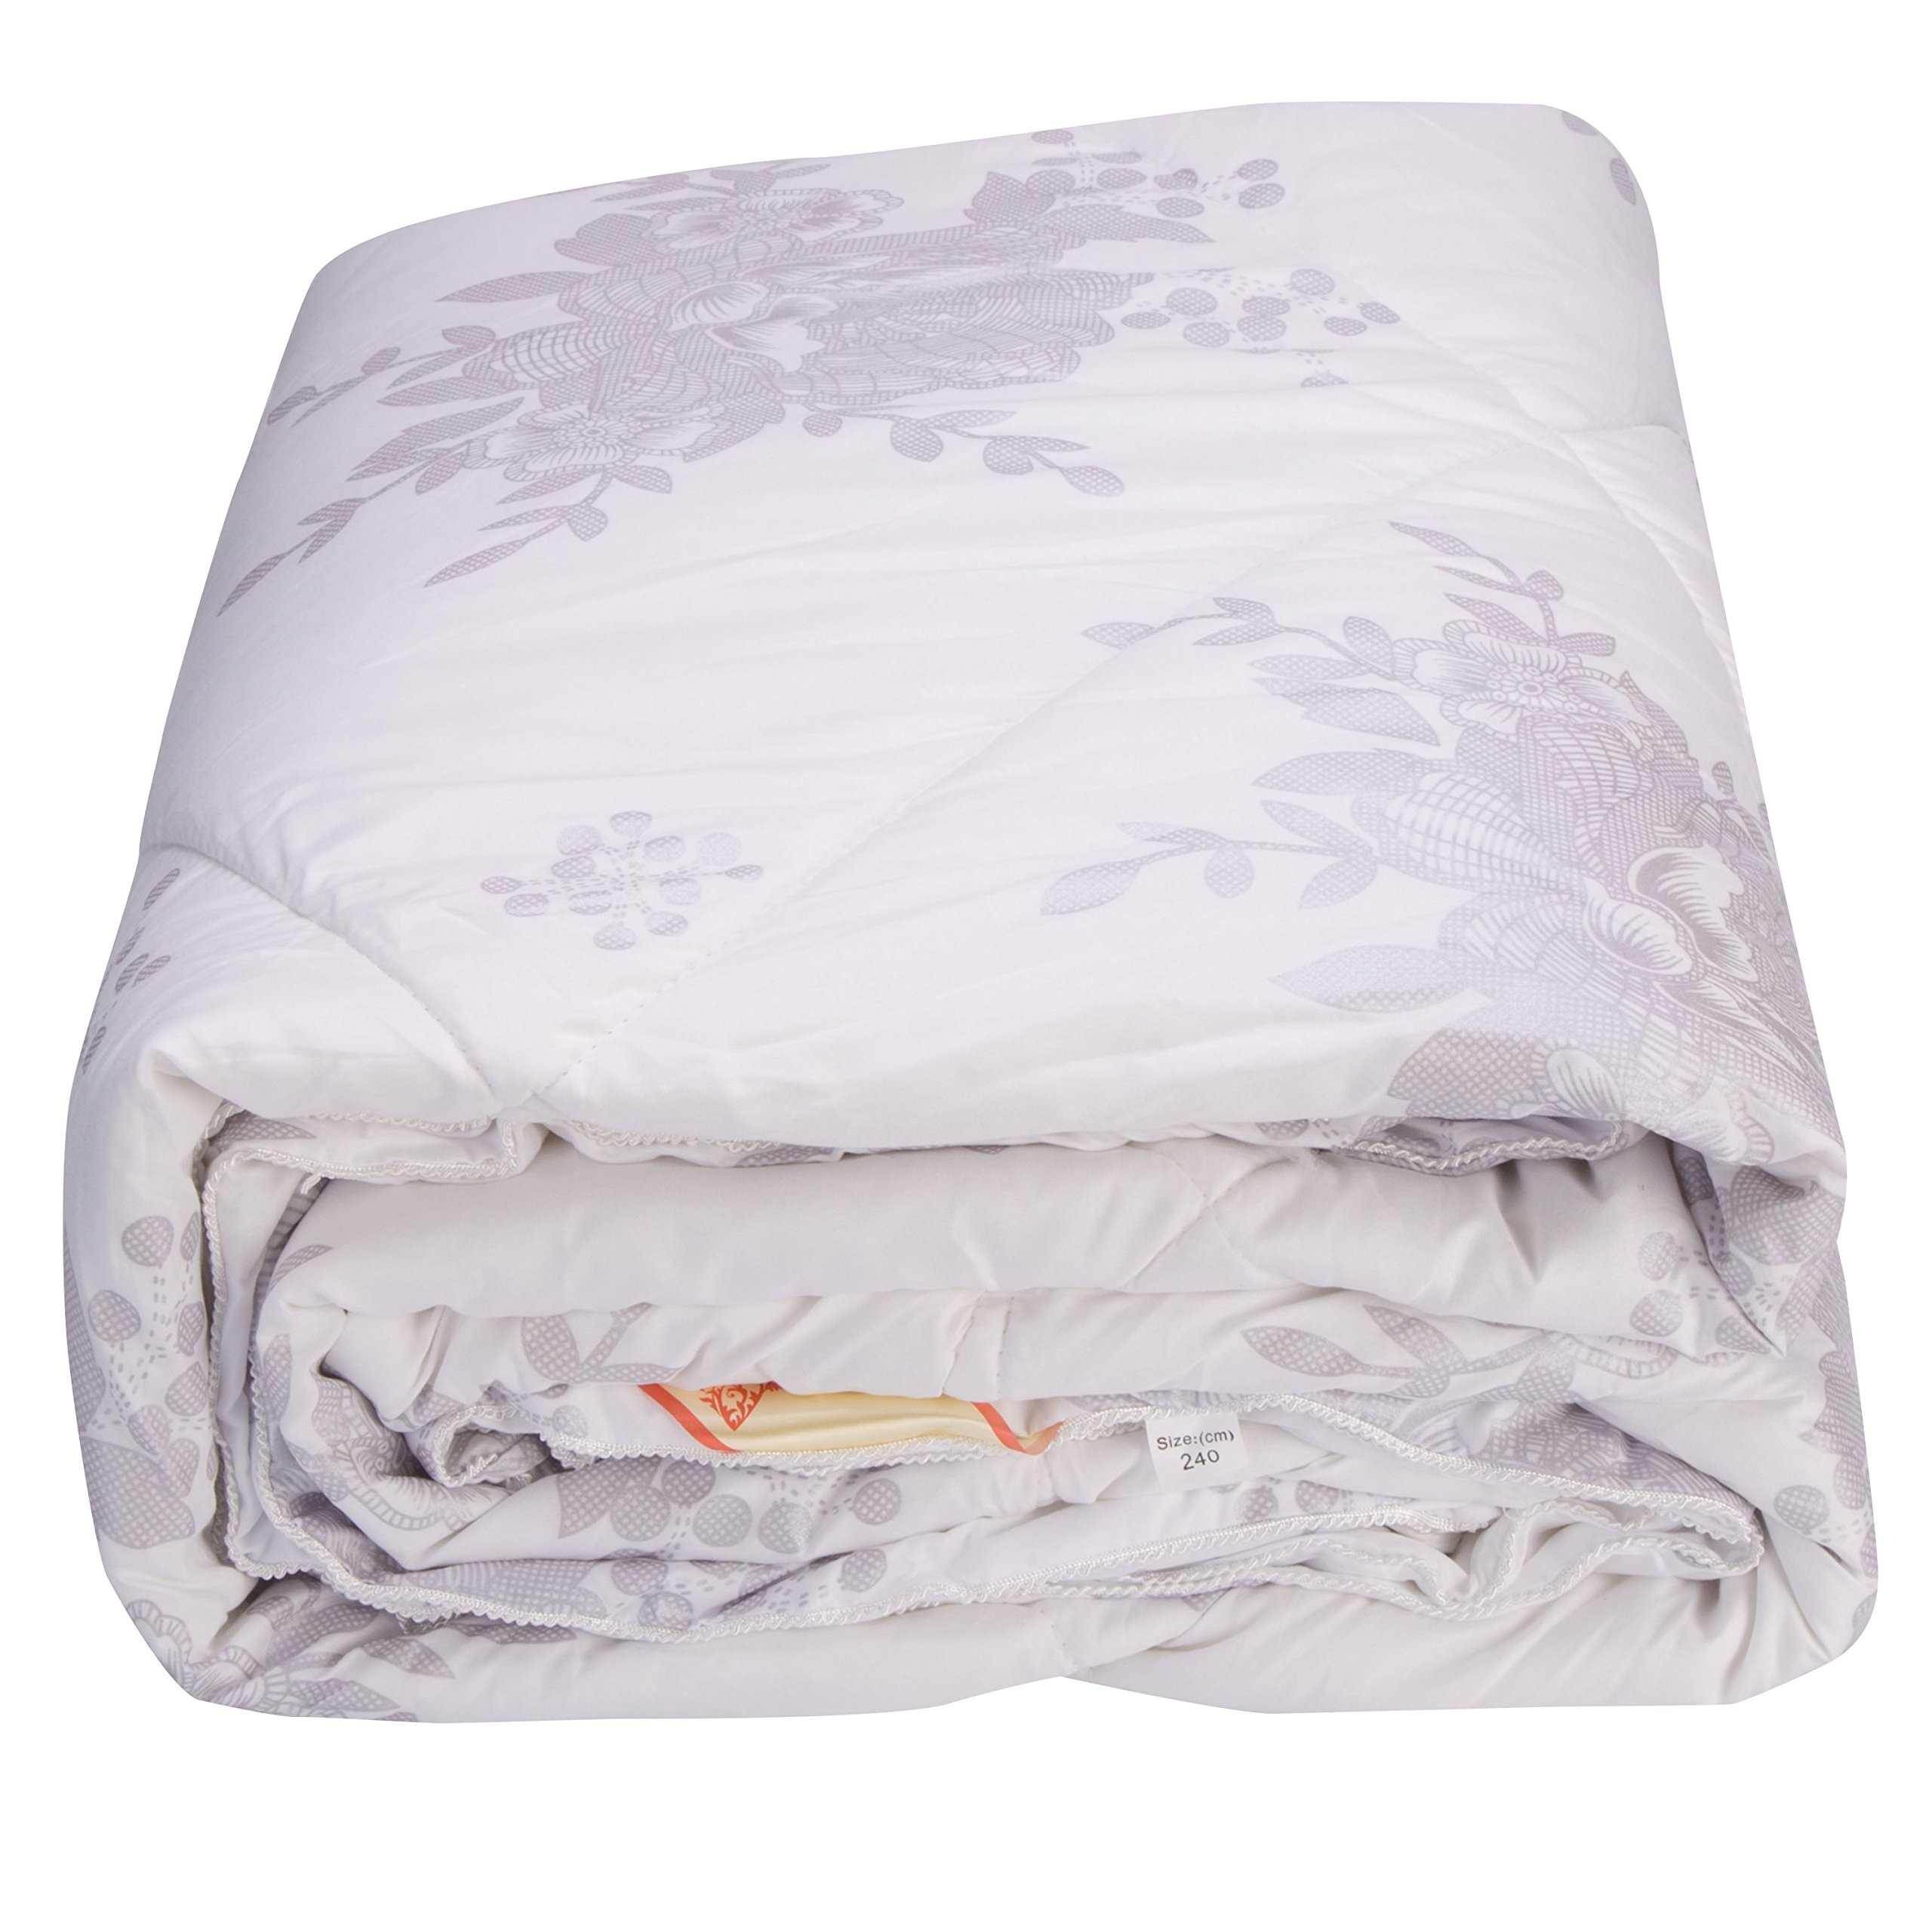 Alicemall Full Size Comforter Duvet Insert White Hypoallergenic Stain Cotton Printing Silky Hollow Fiber Filled Quilt, Twin/ XL Twin/ Full/ Queen/ King/ California King (Full) by Alicemall (Image #8)